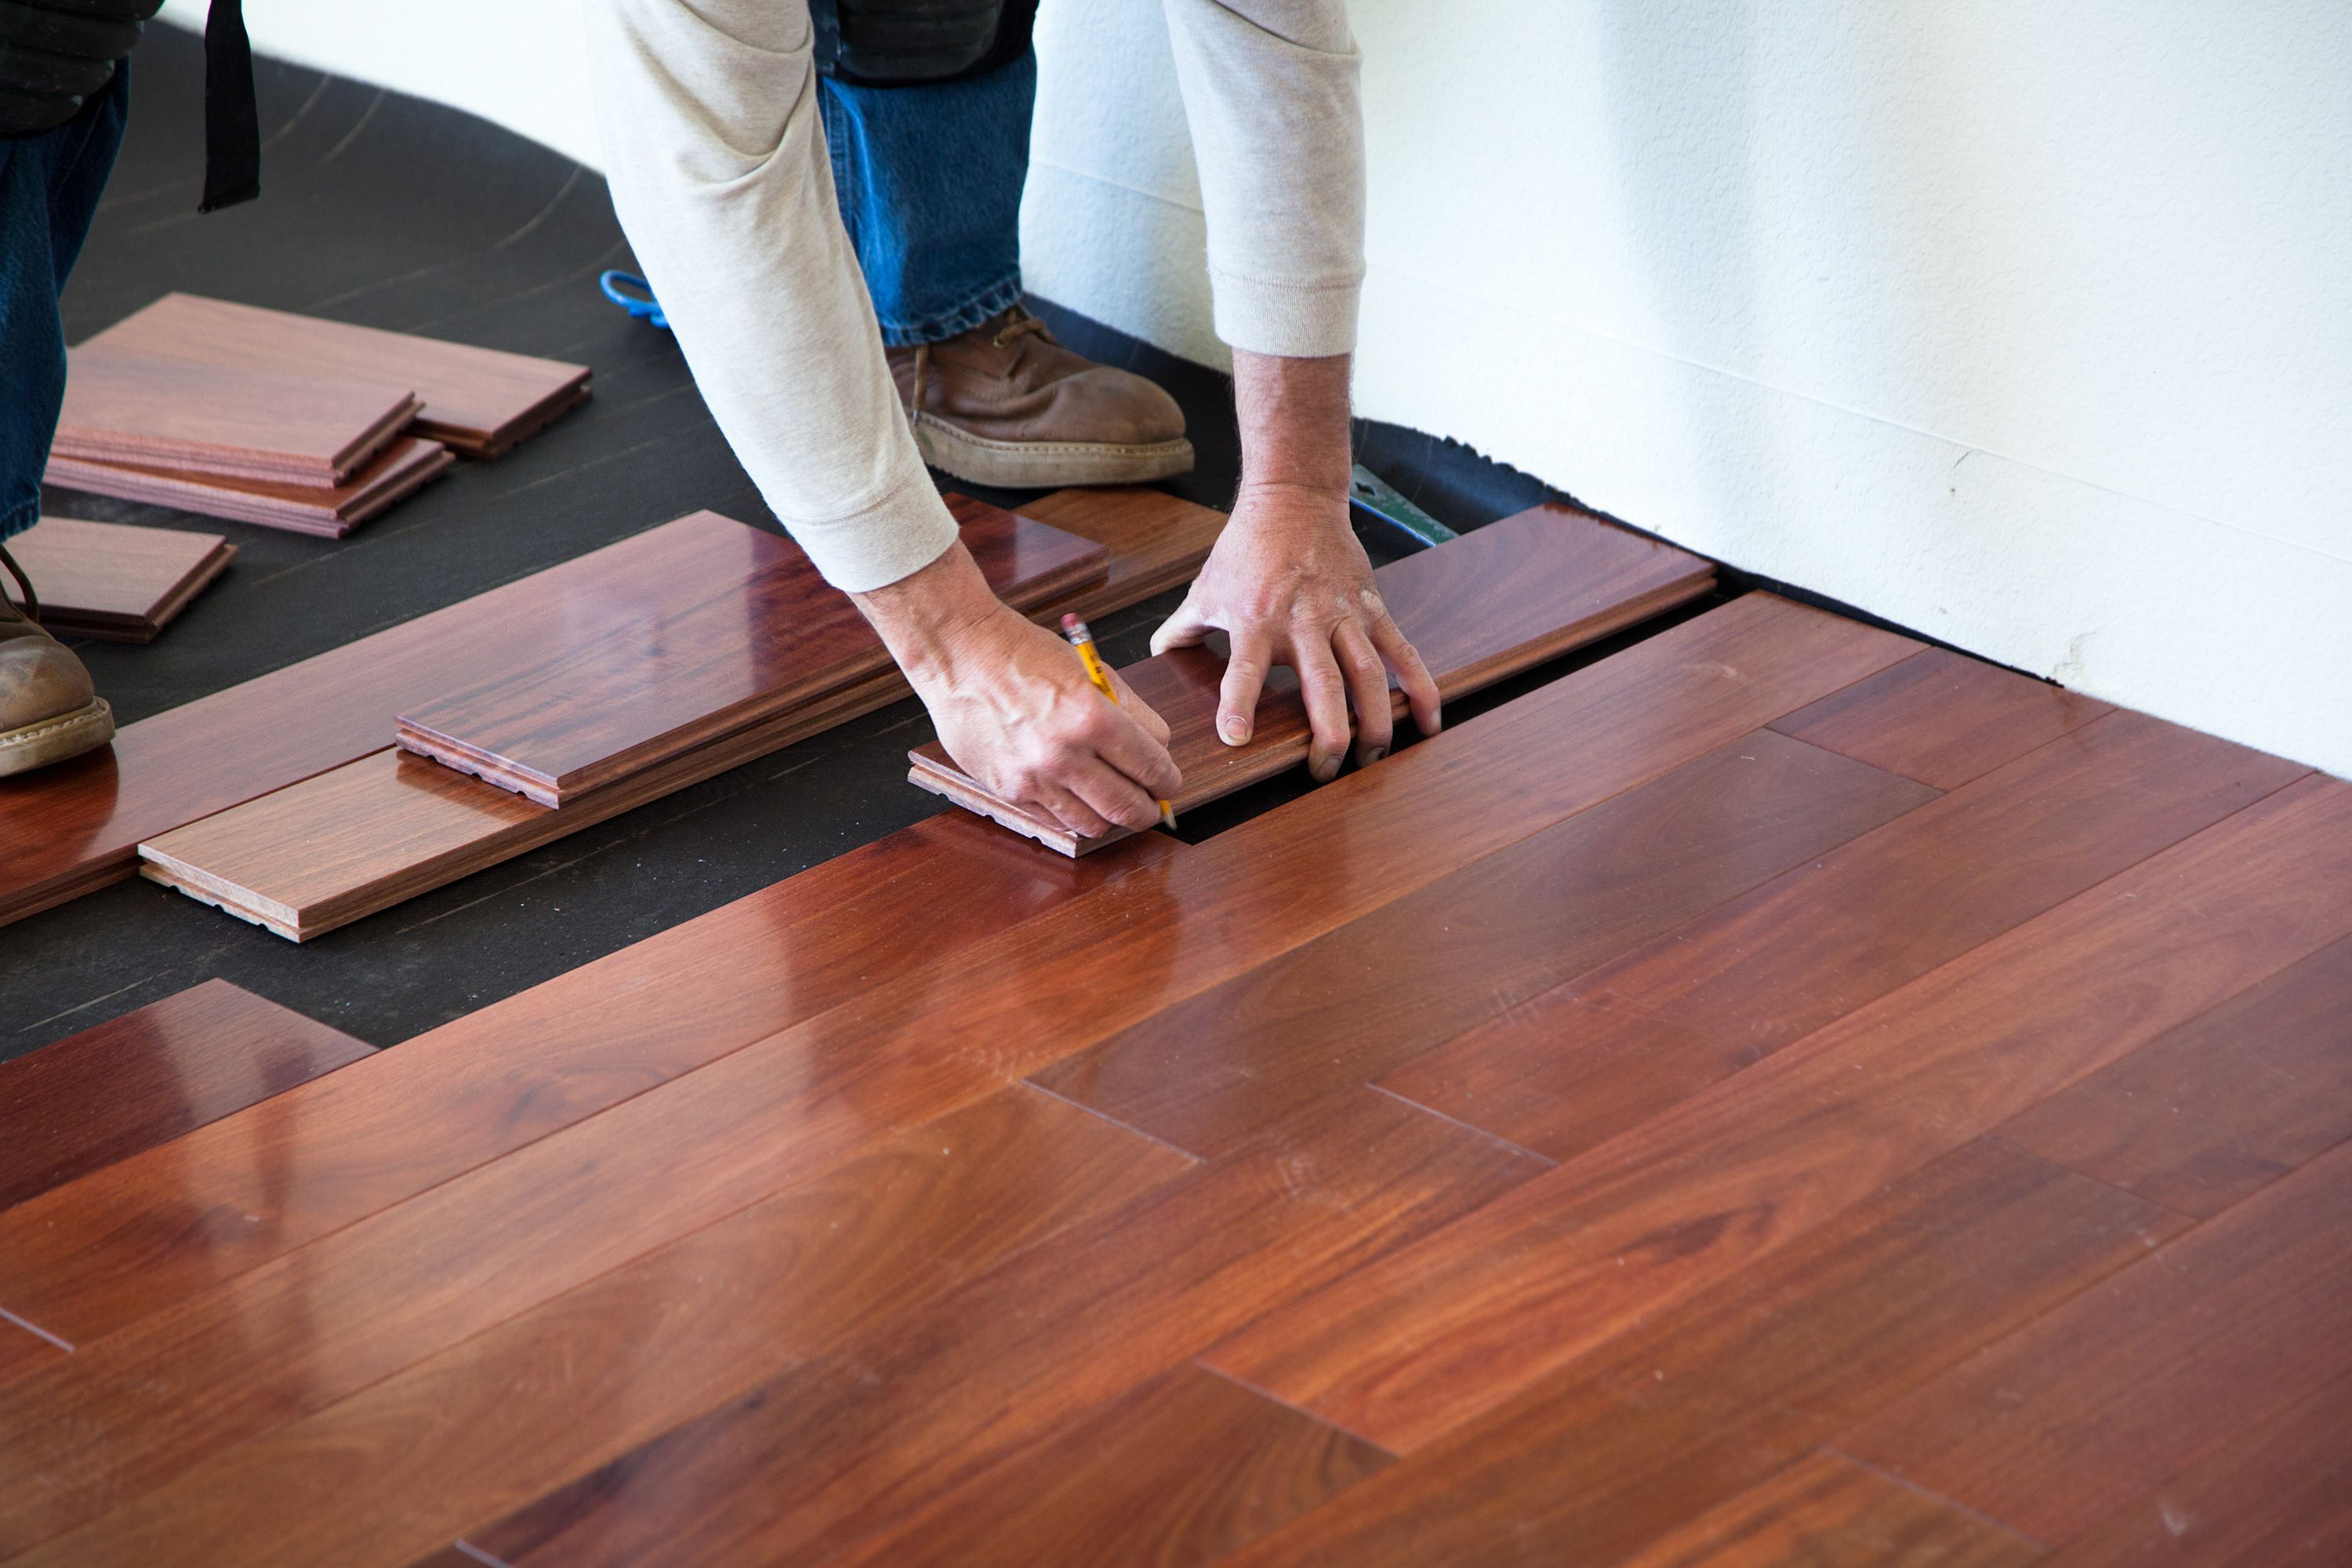 23 attractive Cleaning Hardwood Laminate Floors with Vinegar 2021 free download cleaning hardwood laminate floors with vinegar of dahuacctvth com page 57 of 73 flooring decoration ideas page 57 with regard to moisture barrier for laminate flooring